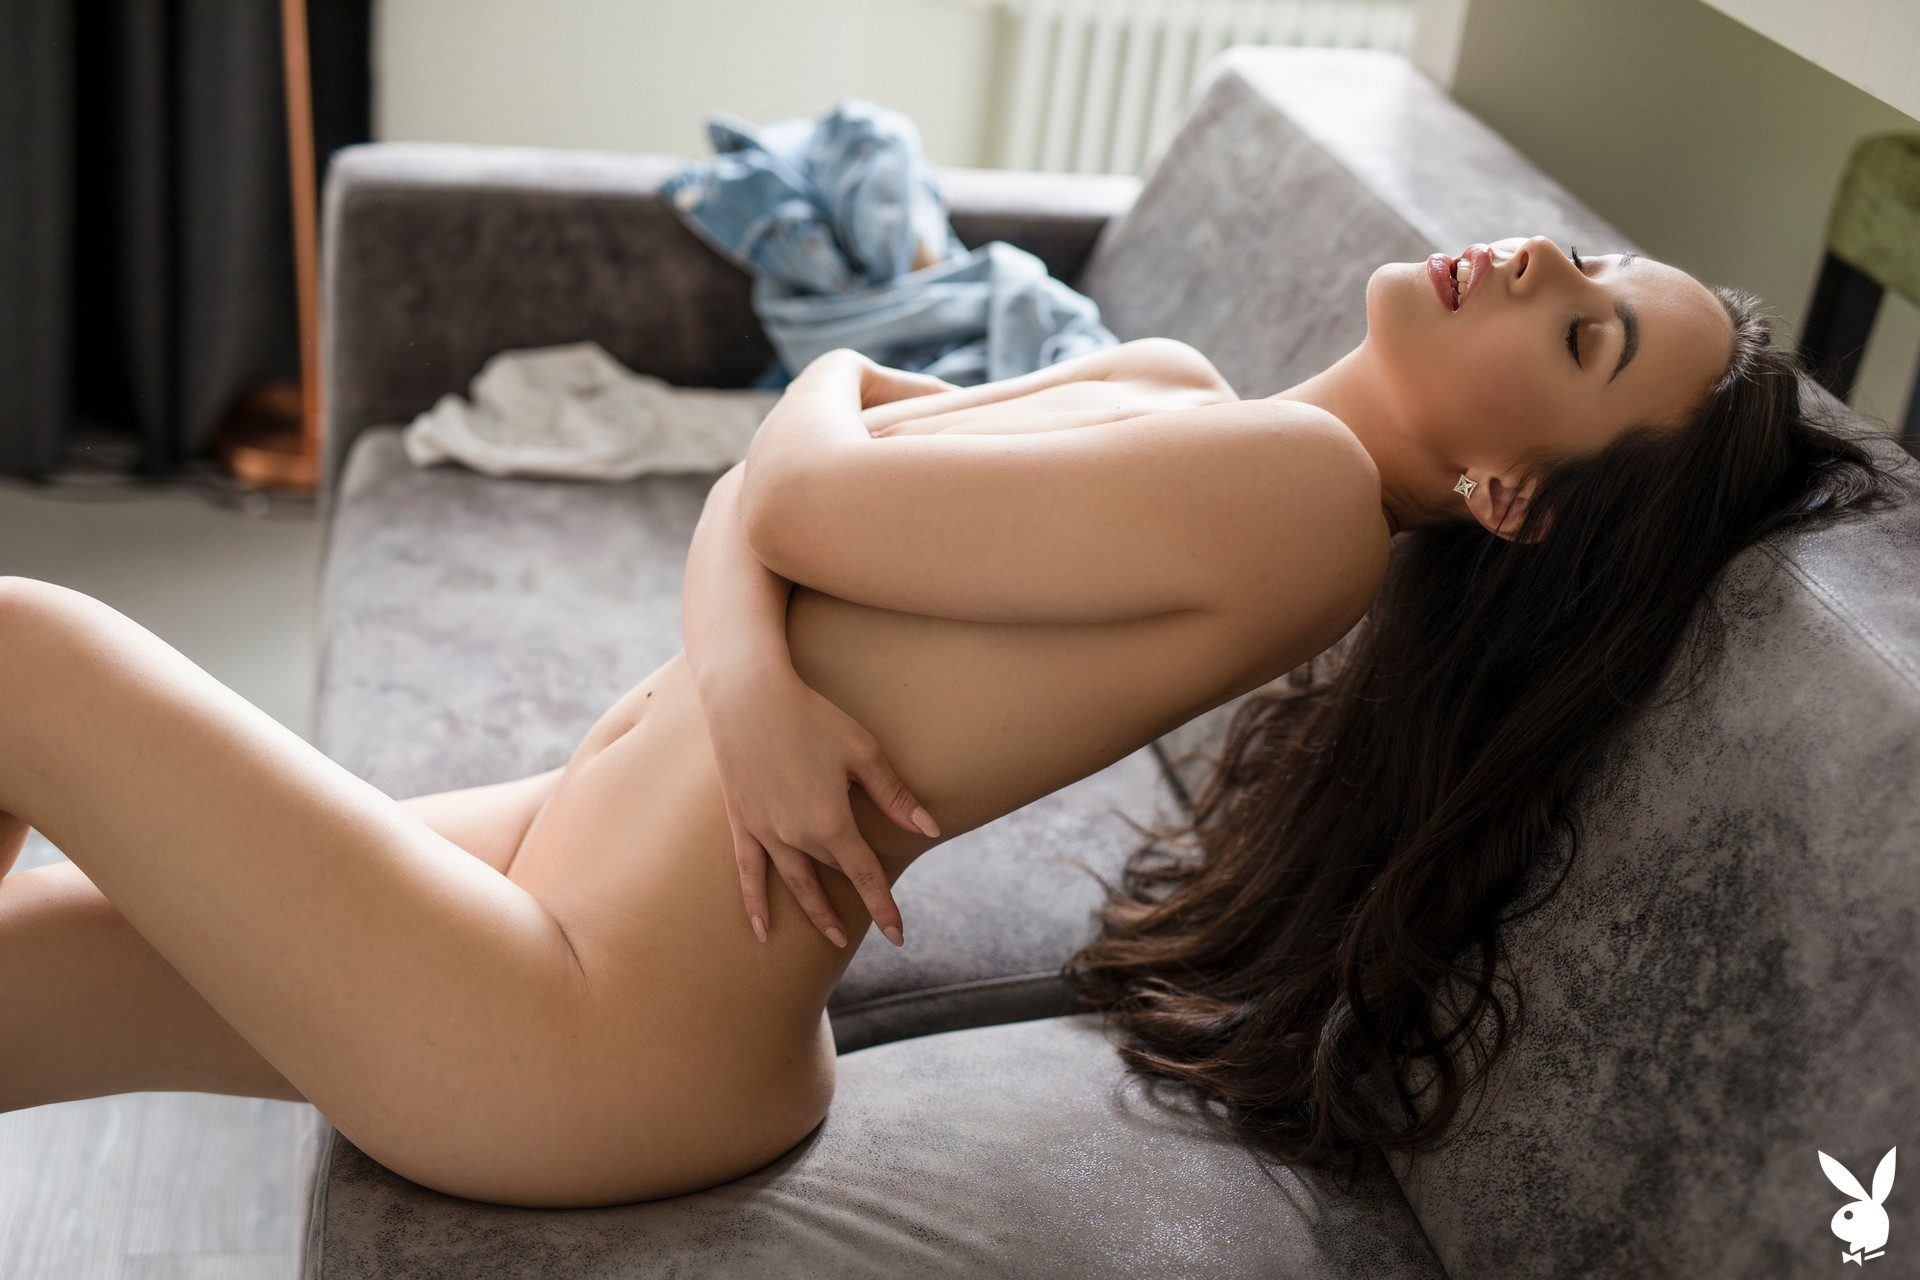 Tia In Casual Friday Playboy Plus (21)